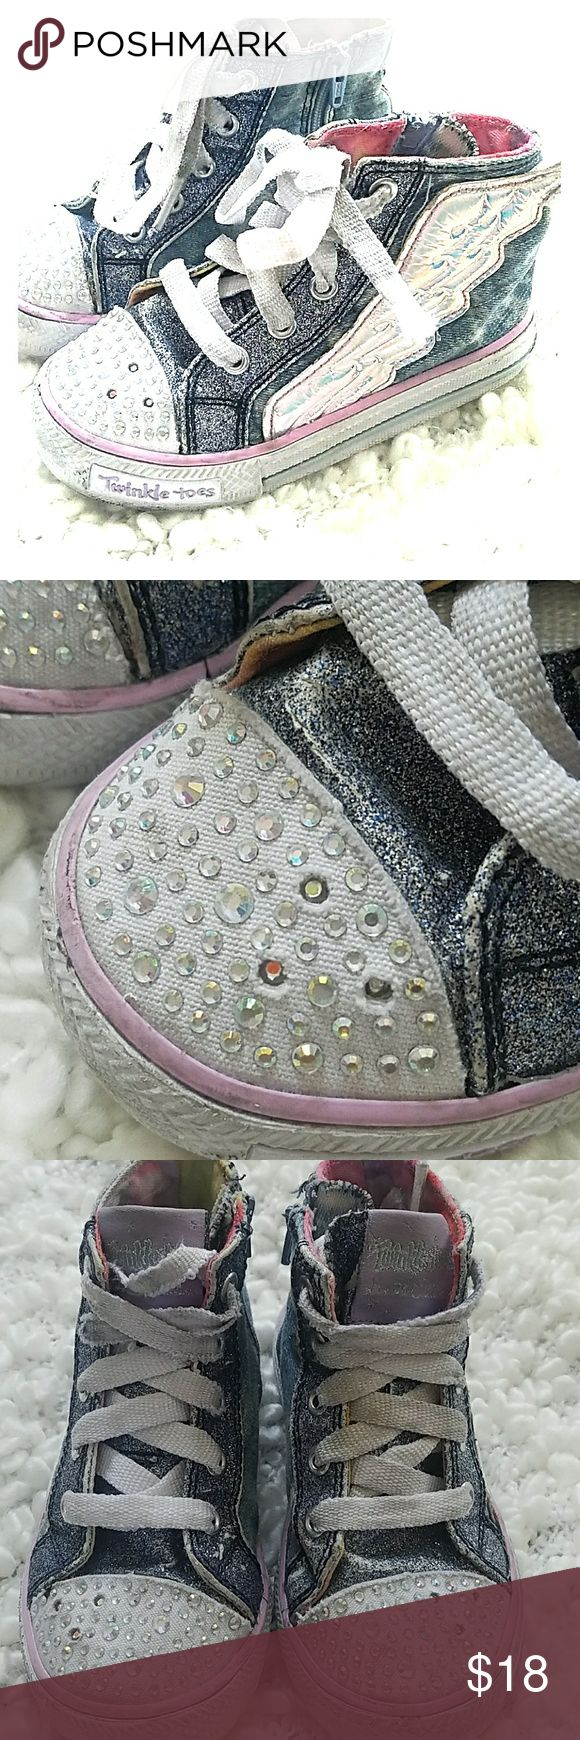 Twinkle Toes angel wings Skechers toddler size 9 Gently used with no rips stains or tears. Super comfy limited edition Twinkle Toes that light up. Skechers Shoes Sneakers